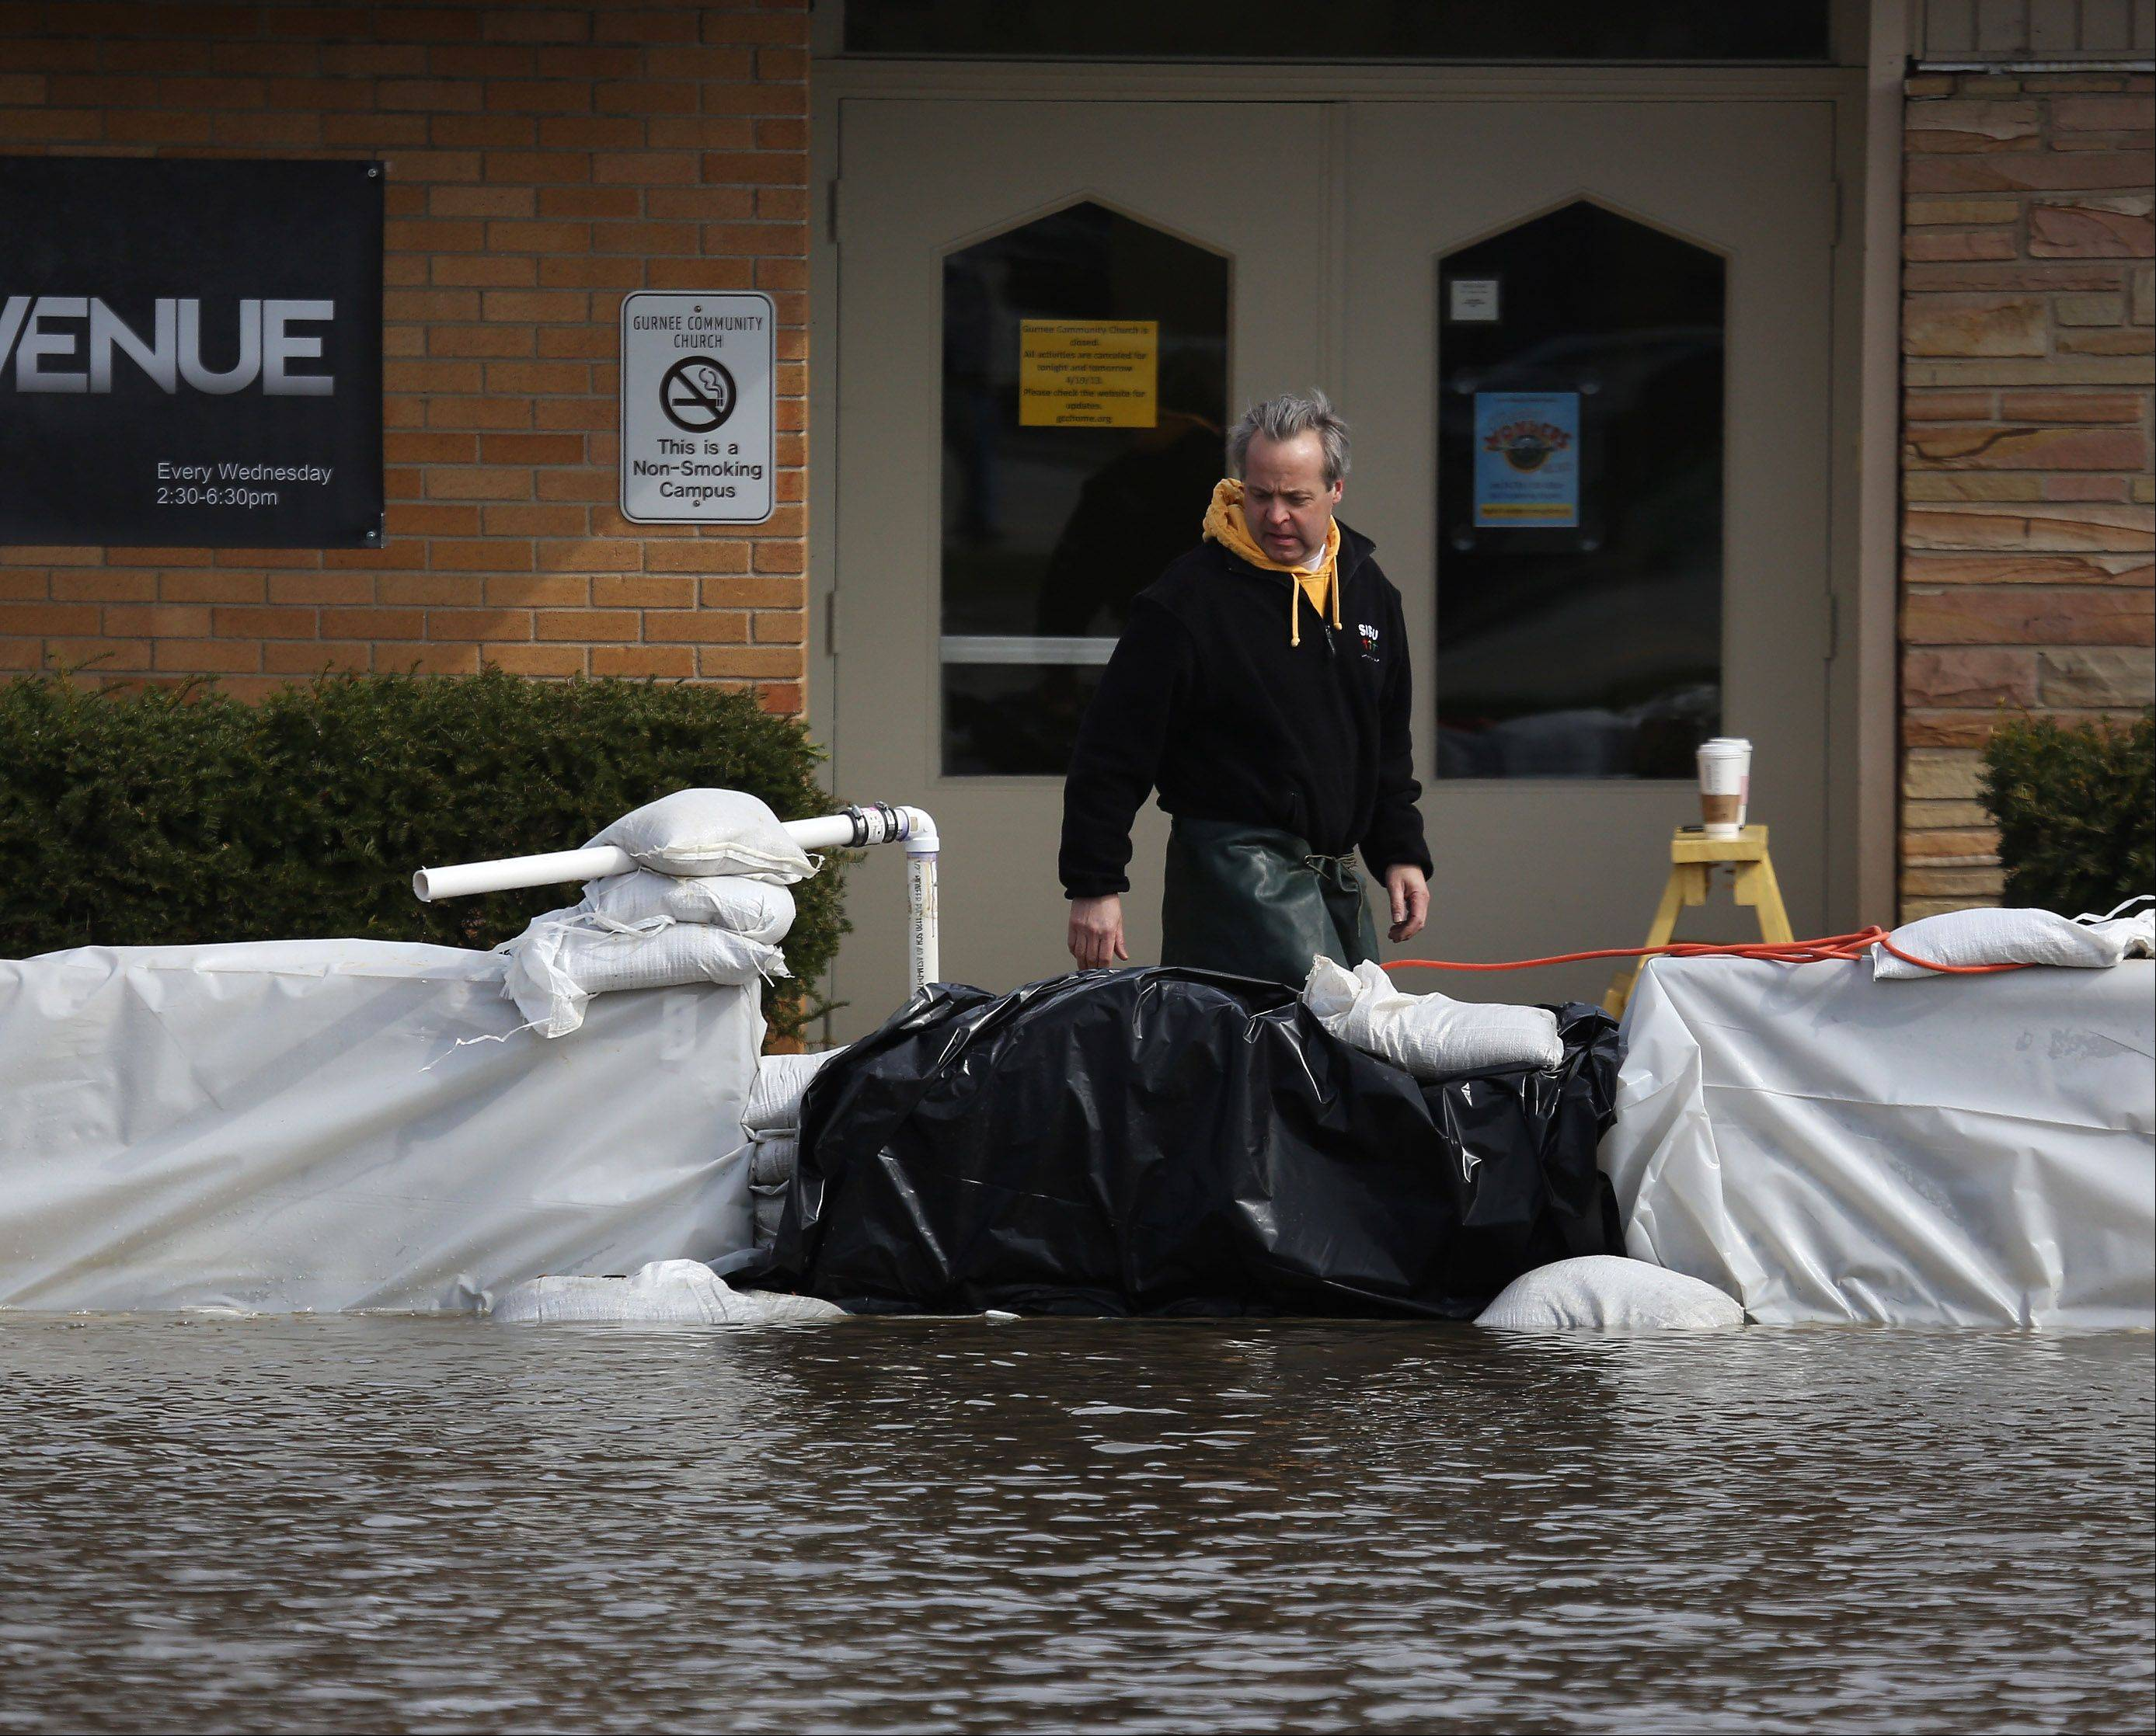 Volunteer Phil Rosborough checks the sump pumps around Gurnee Community Church after the building was surrounded by flooding from the Des Plaines River Sunday. �We are keeping the inside dry,� said Rosborough. �It is all hands on deck.�